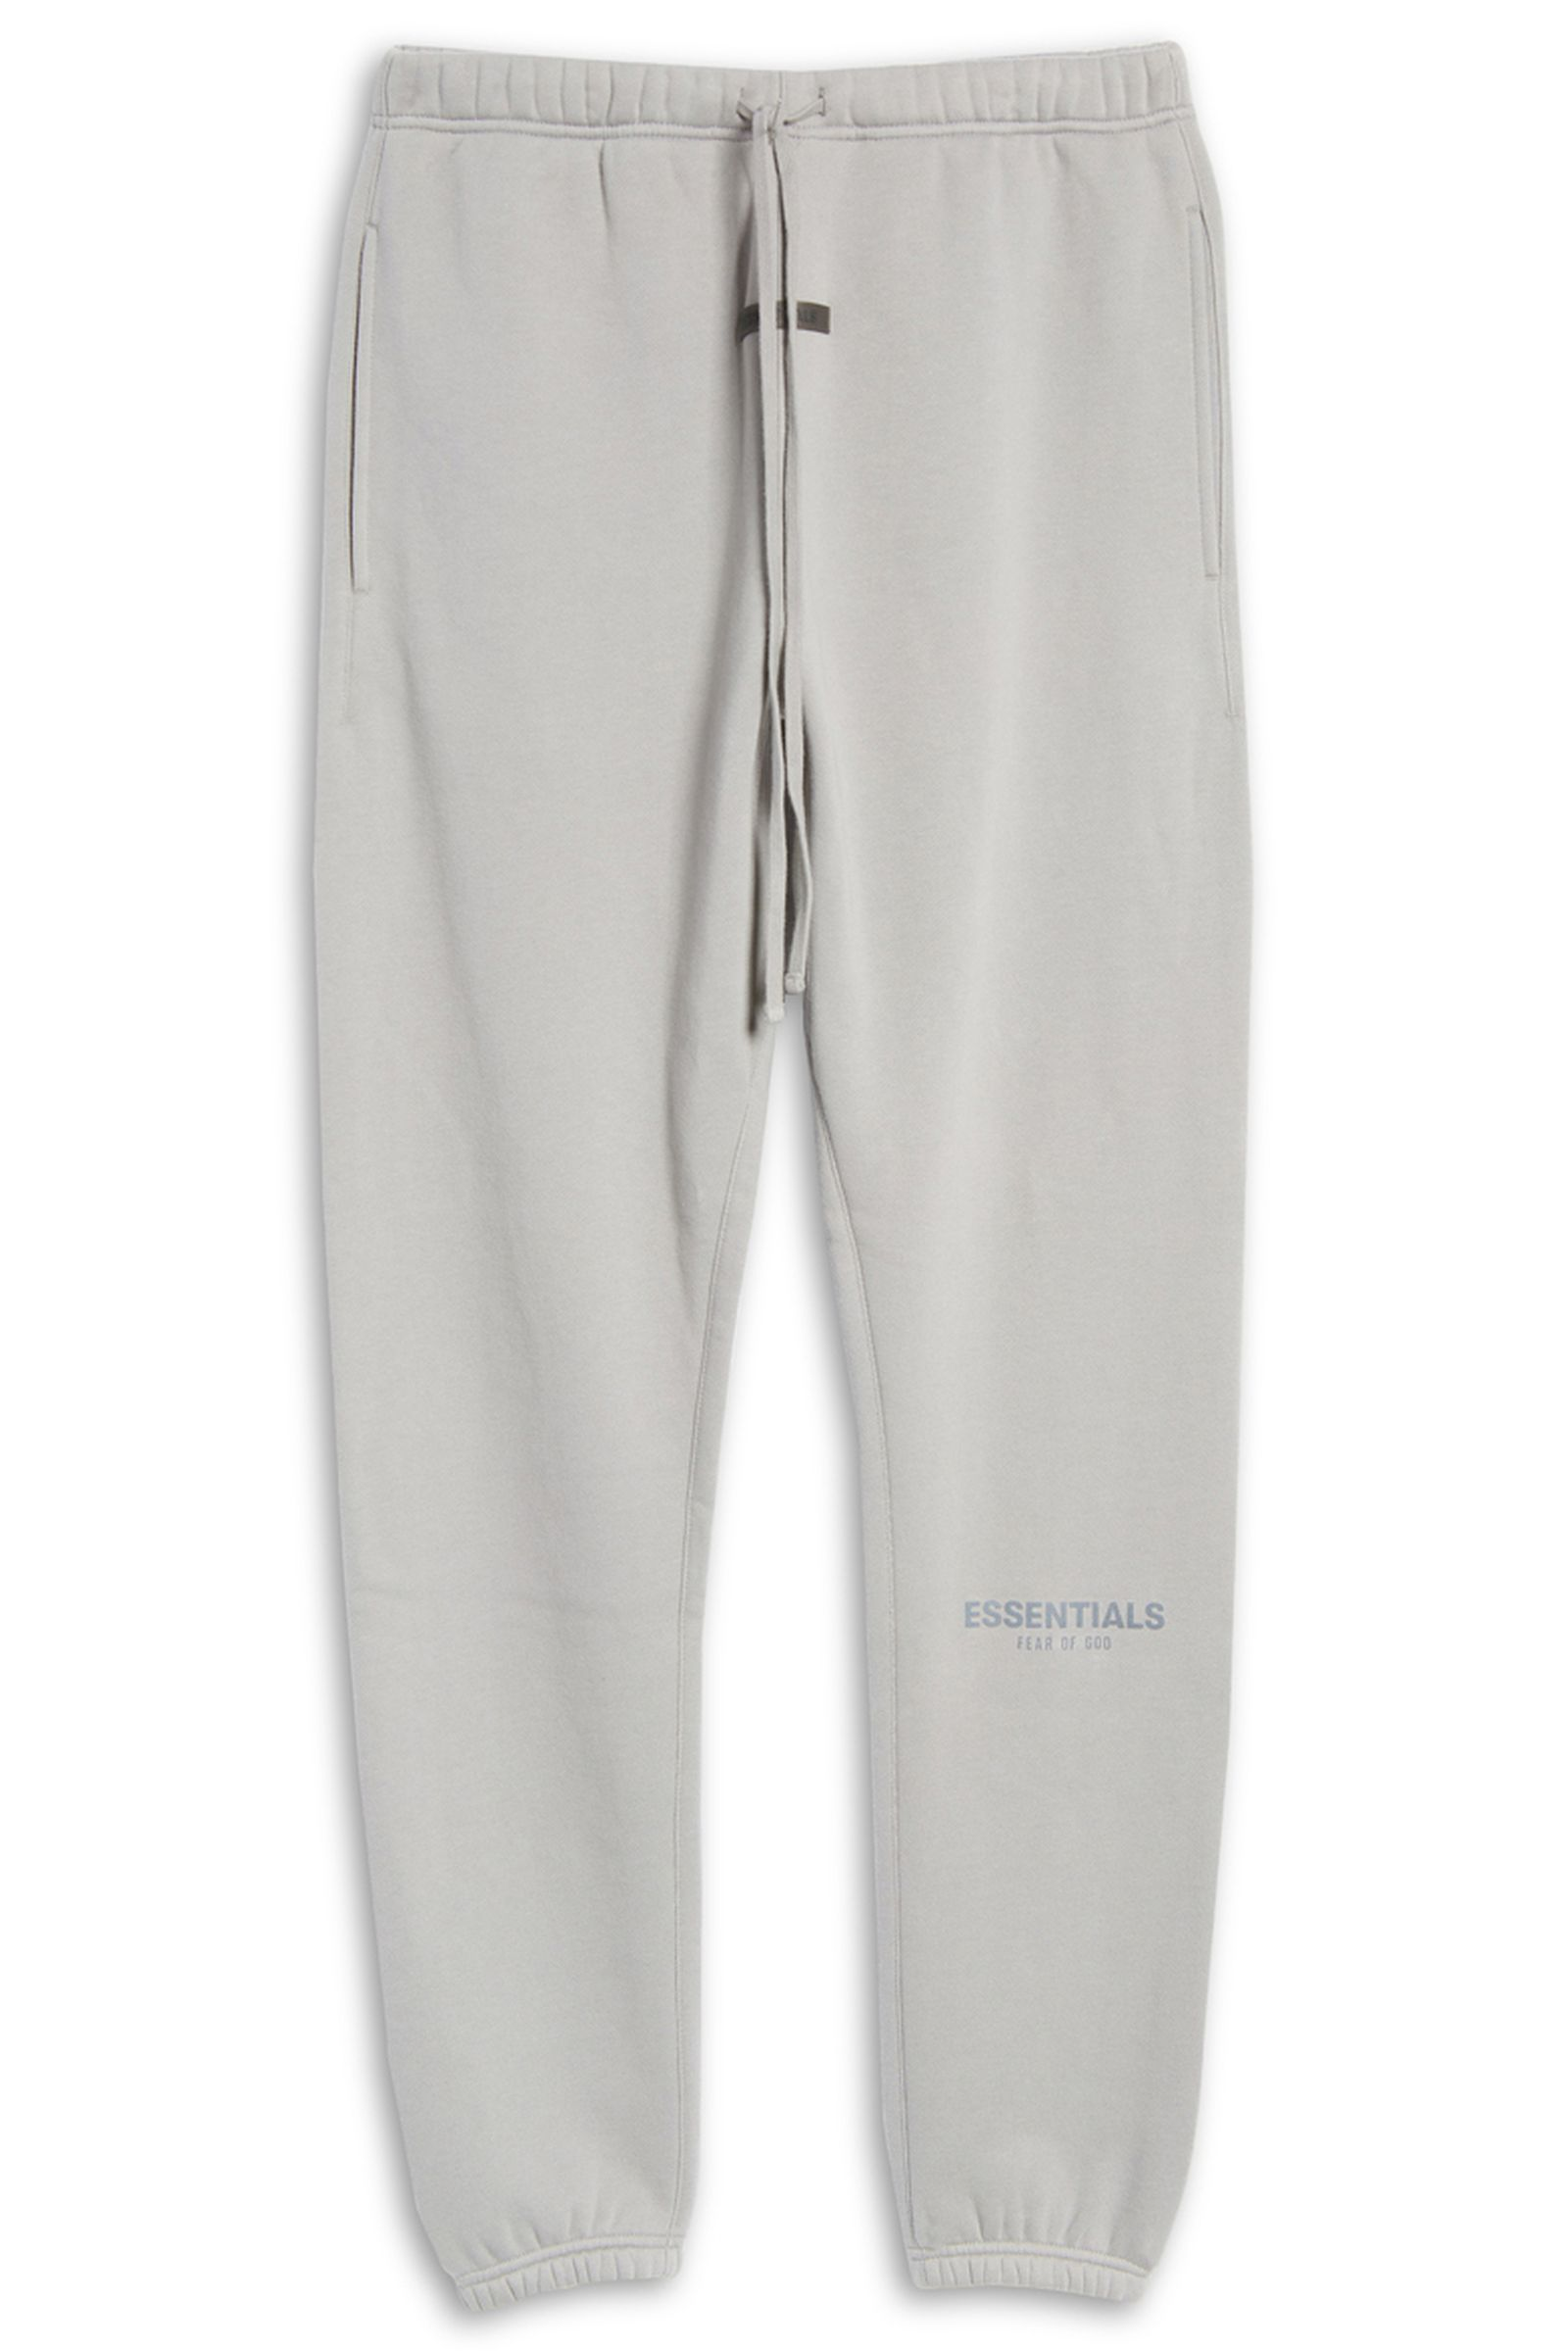 fear of god essentials nordstrom exclusive (16)